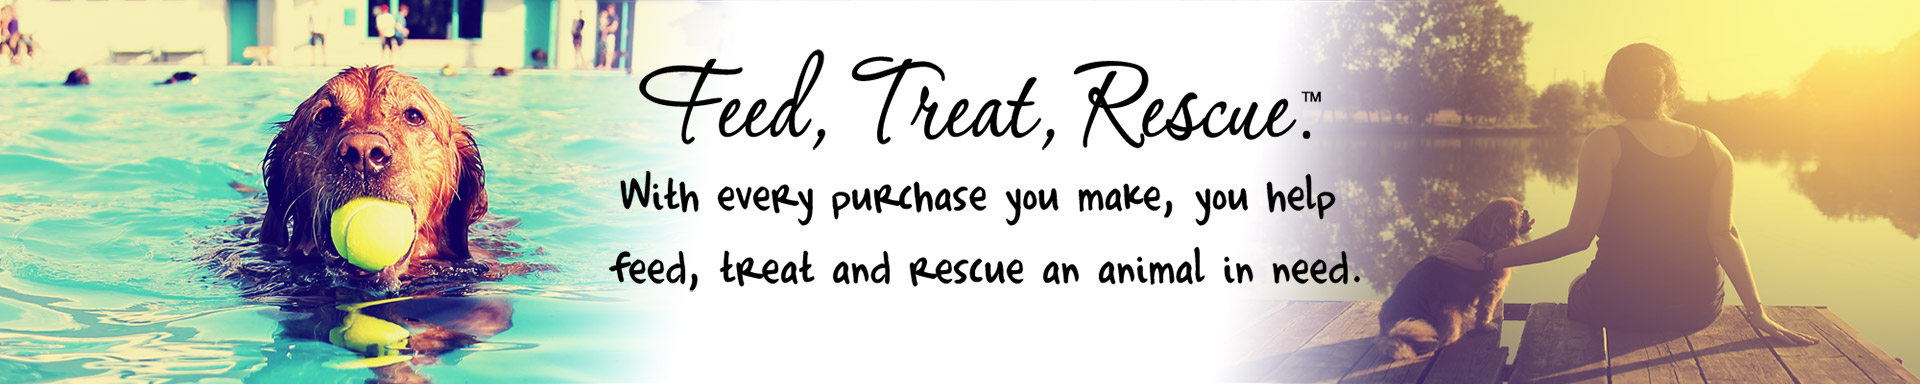 Feed, Treat, Rescue™. With every purchase you make, you help feed, treat and rescue an animal in need.